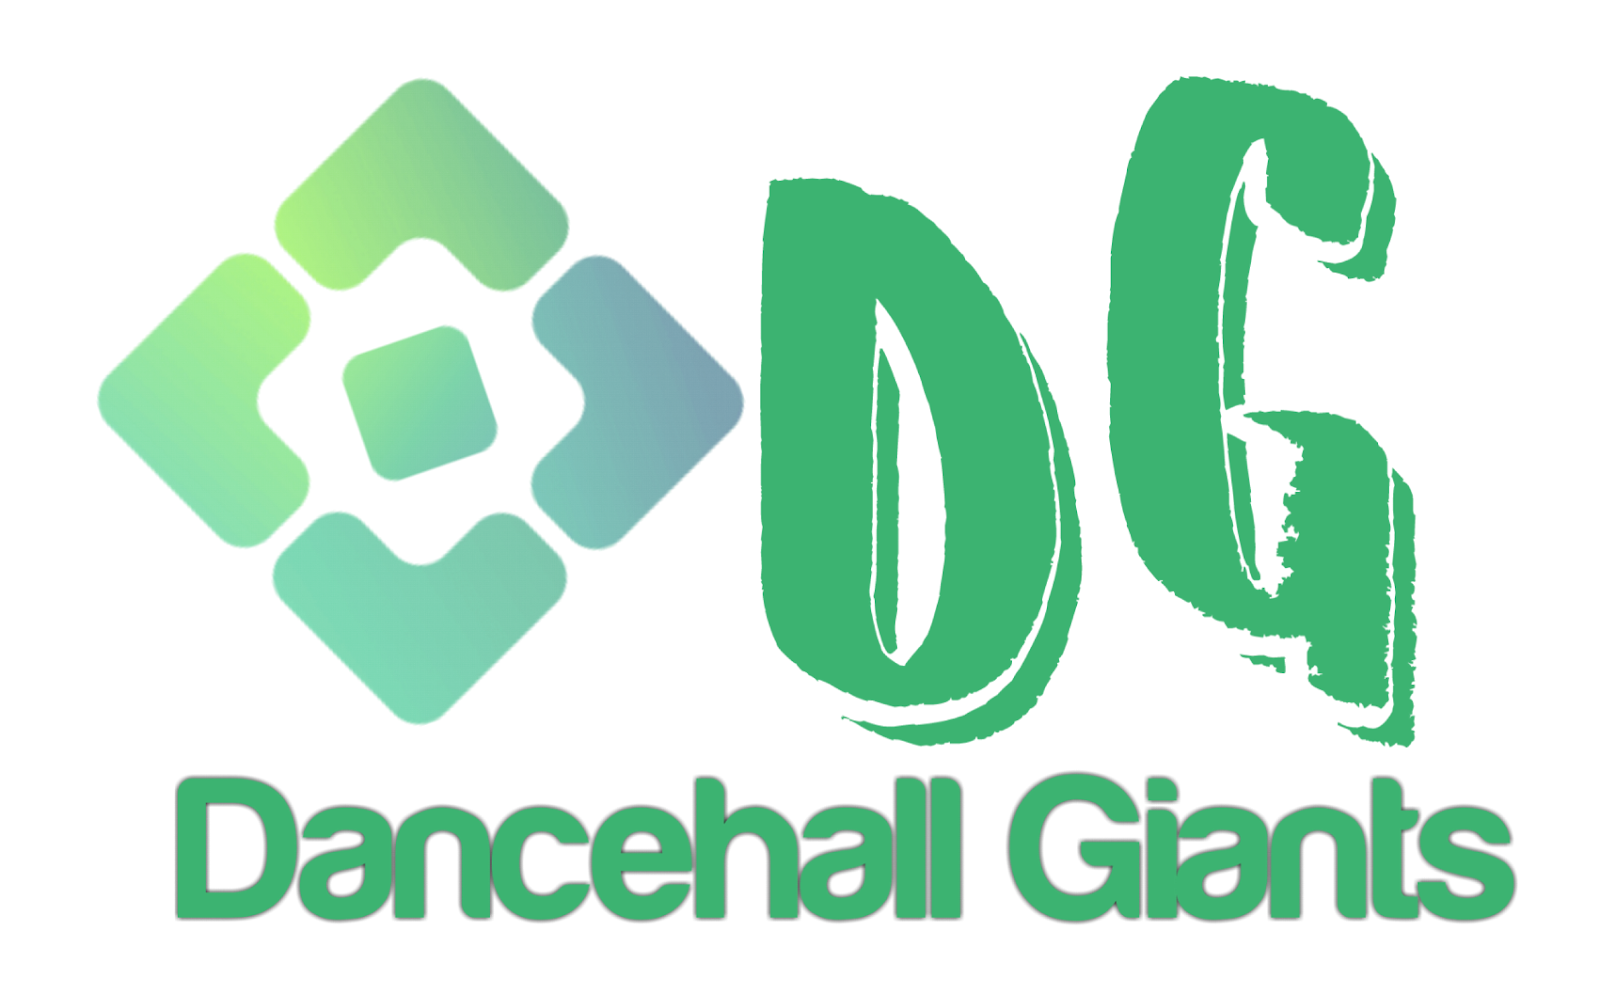 Dancehall Giants